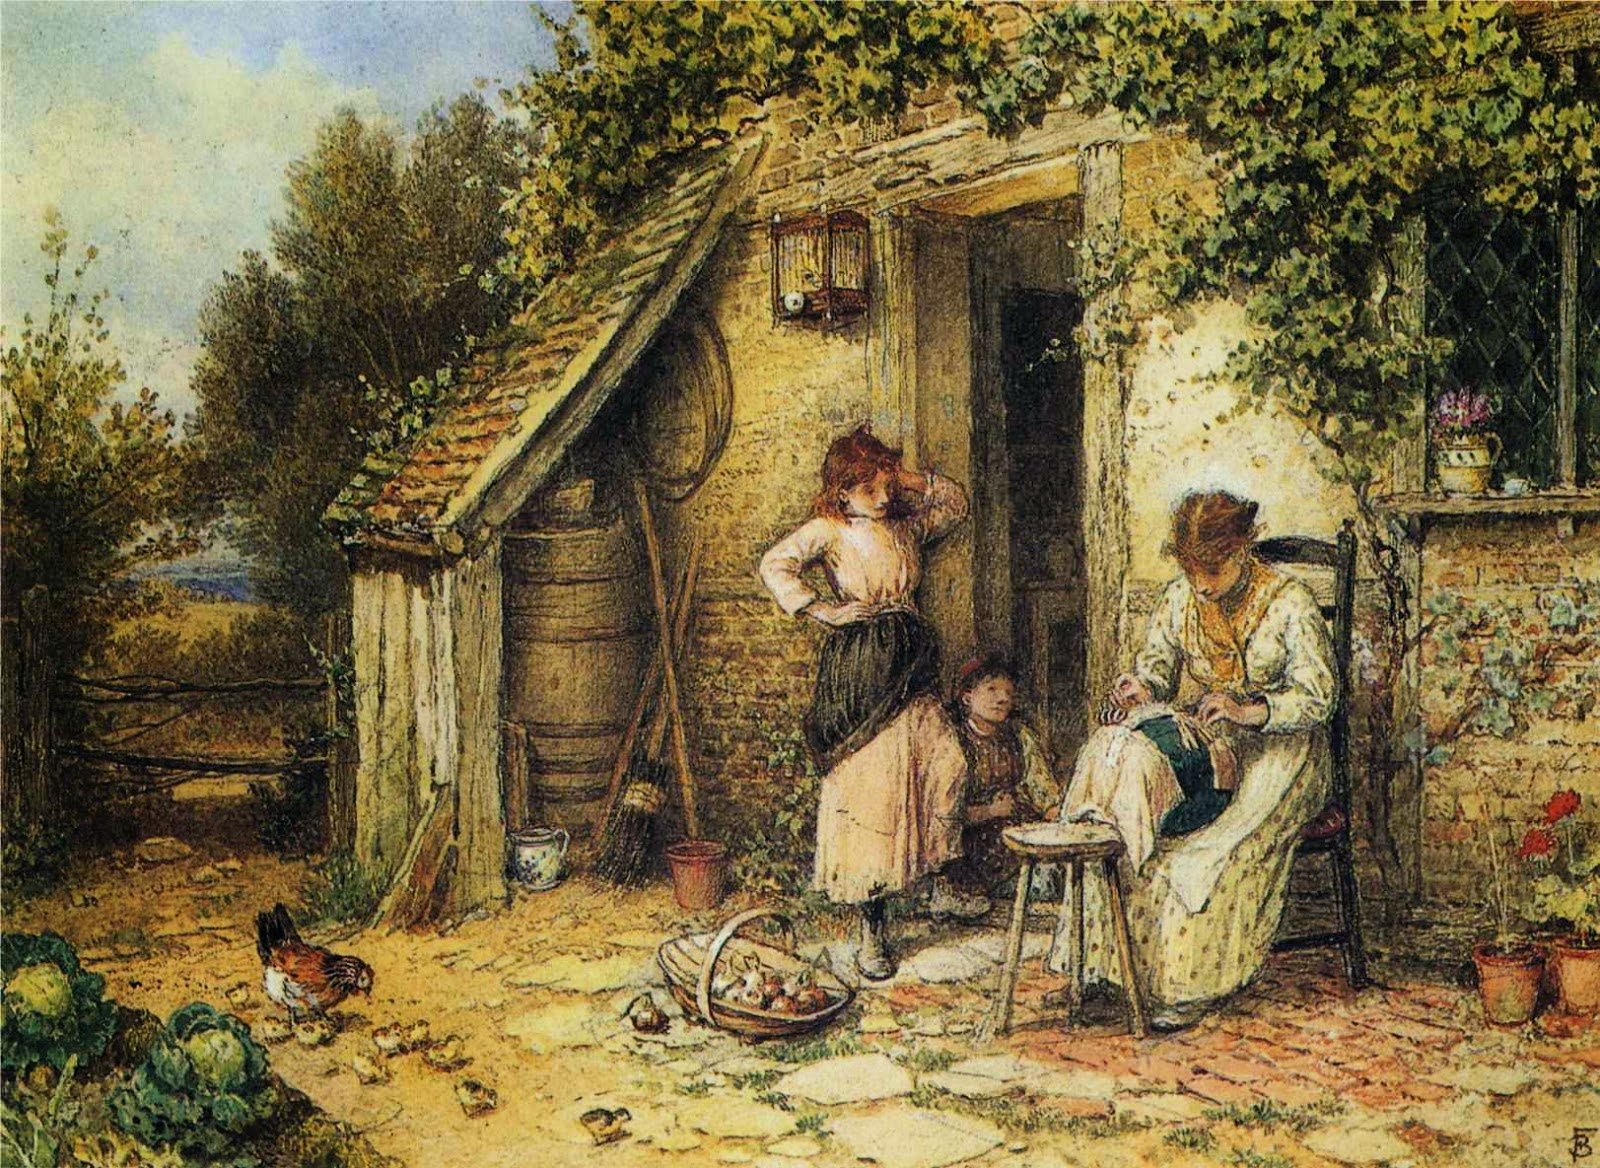 Art by Myles Birket Foster